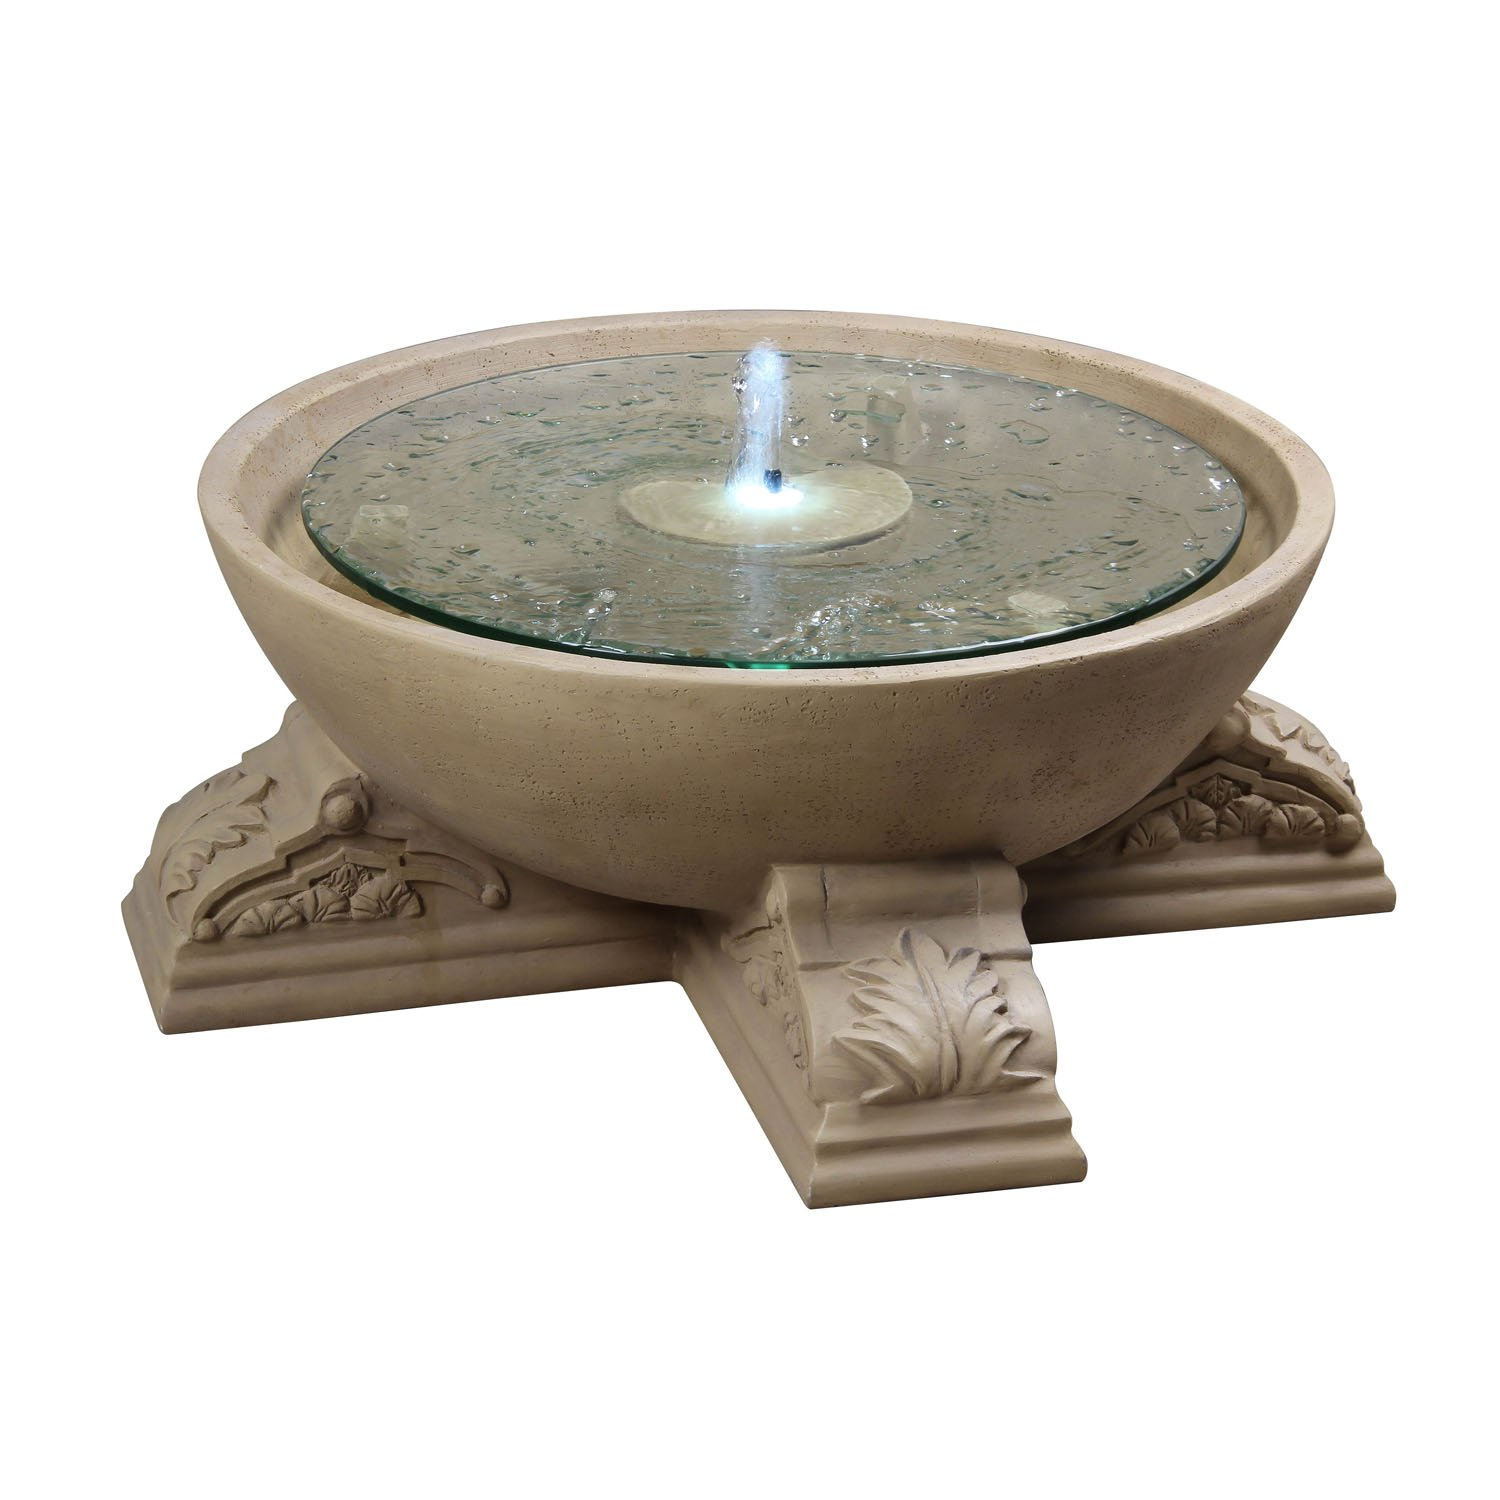 Kenroy Home Palazzo Outdoor Floor Fountain, Sandstone